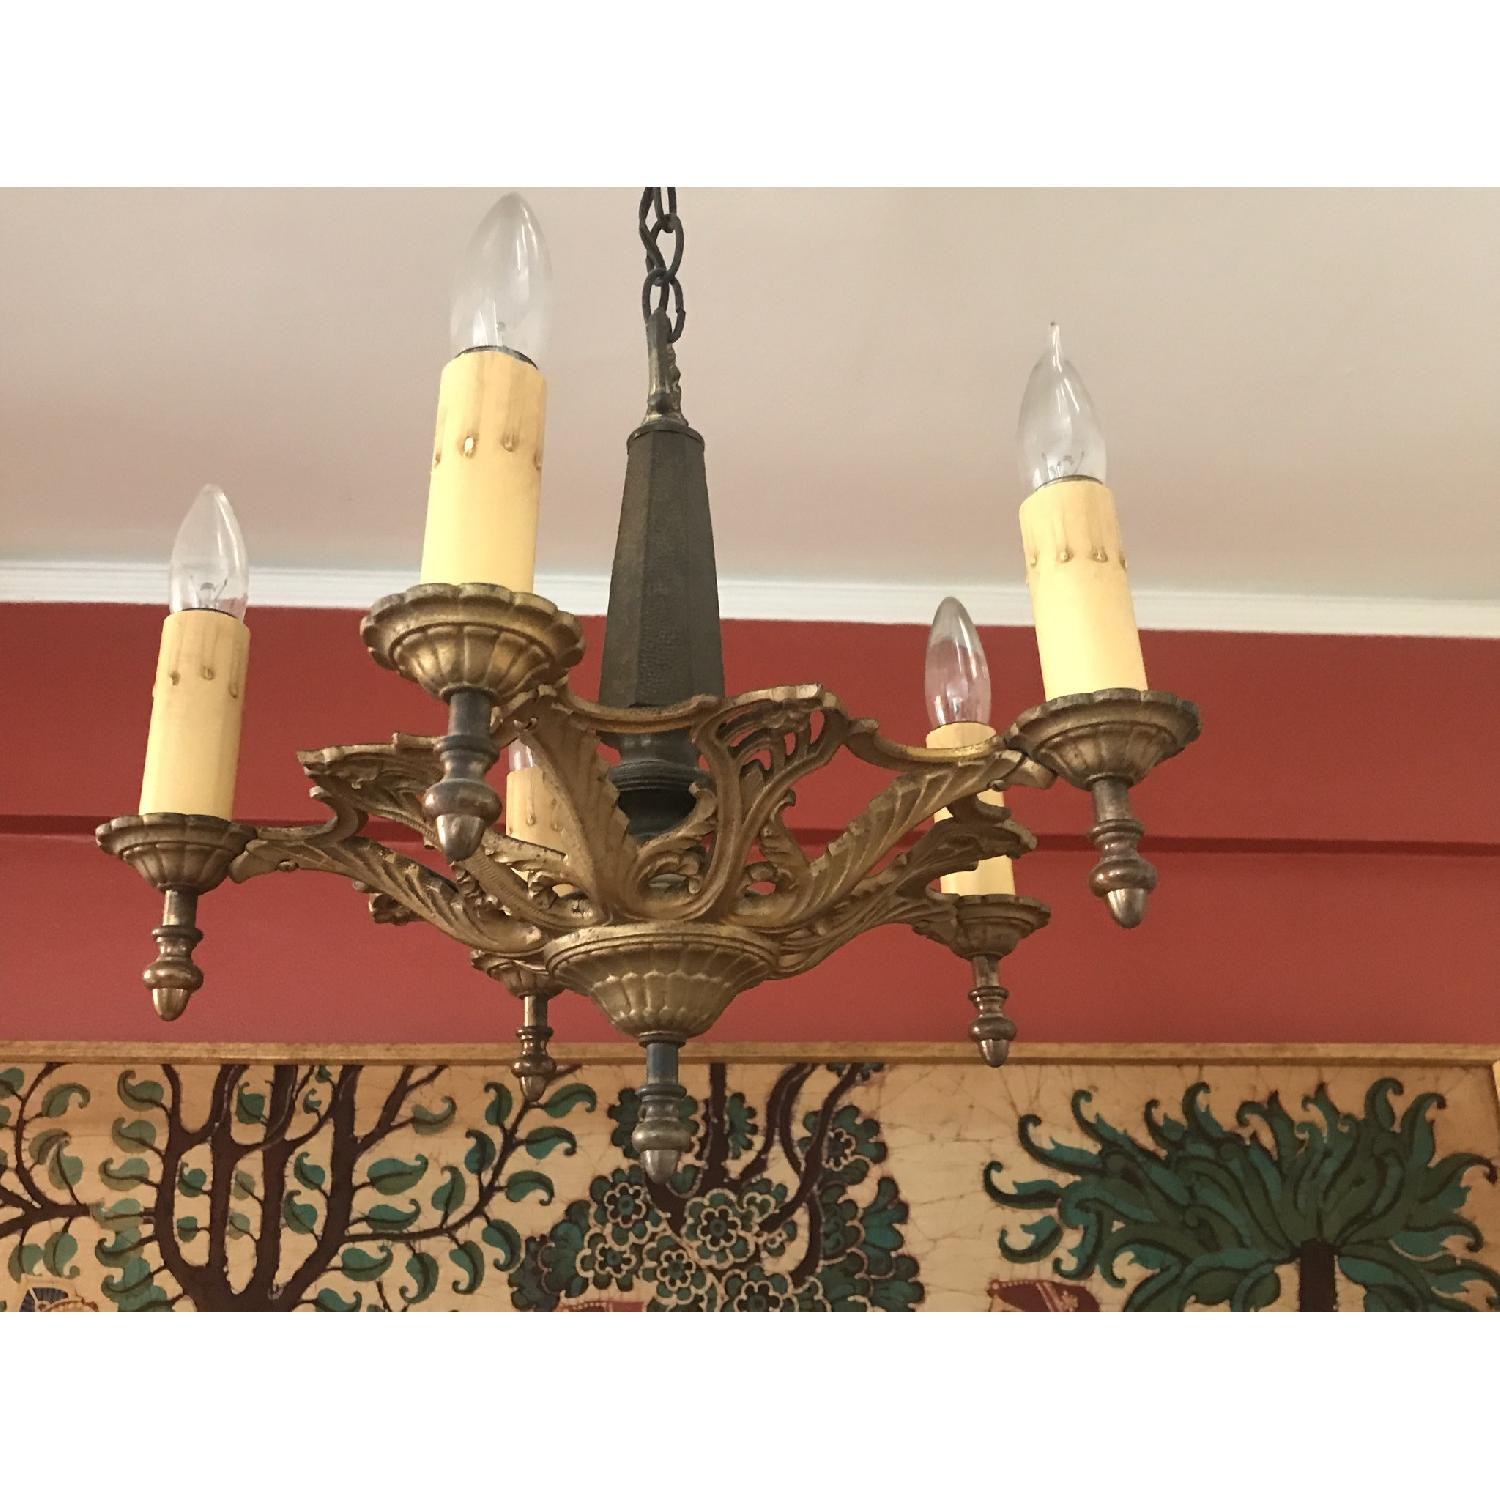 ABC Carpet and Home Antique Brass Chandelier - image-3